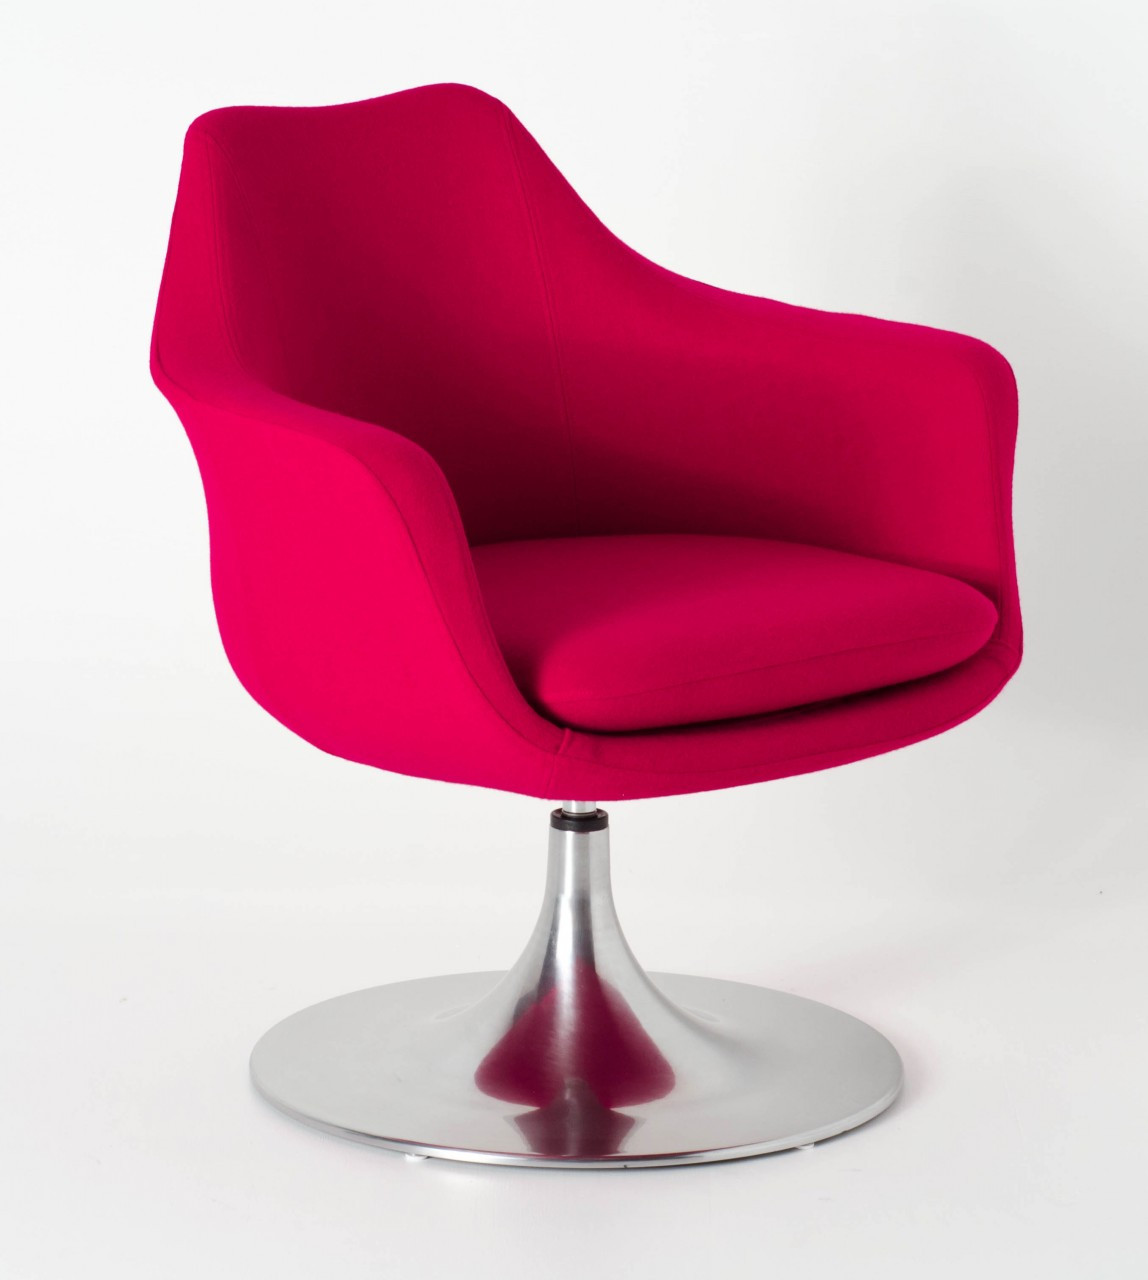 Replica eero saarinen tulip armchair upholstered fibreglass rose milano republic furniture - Replica tulip chair ...